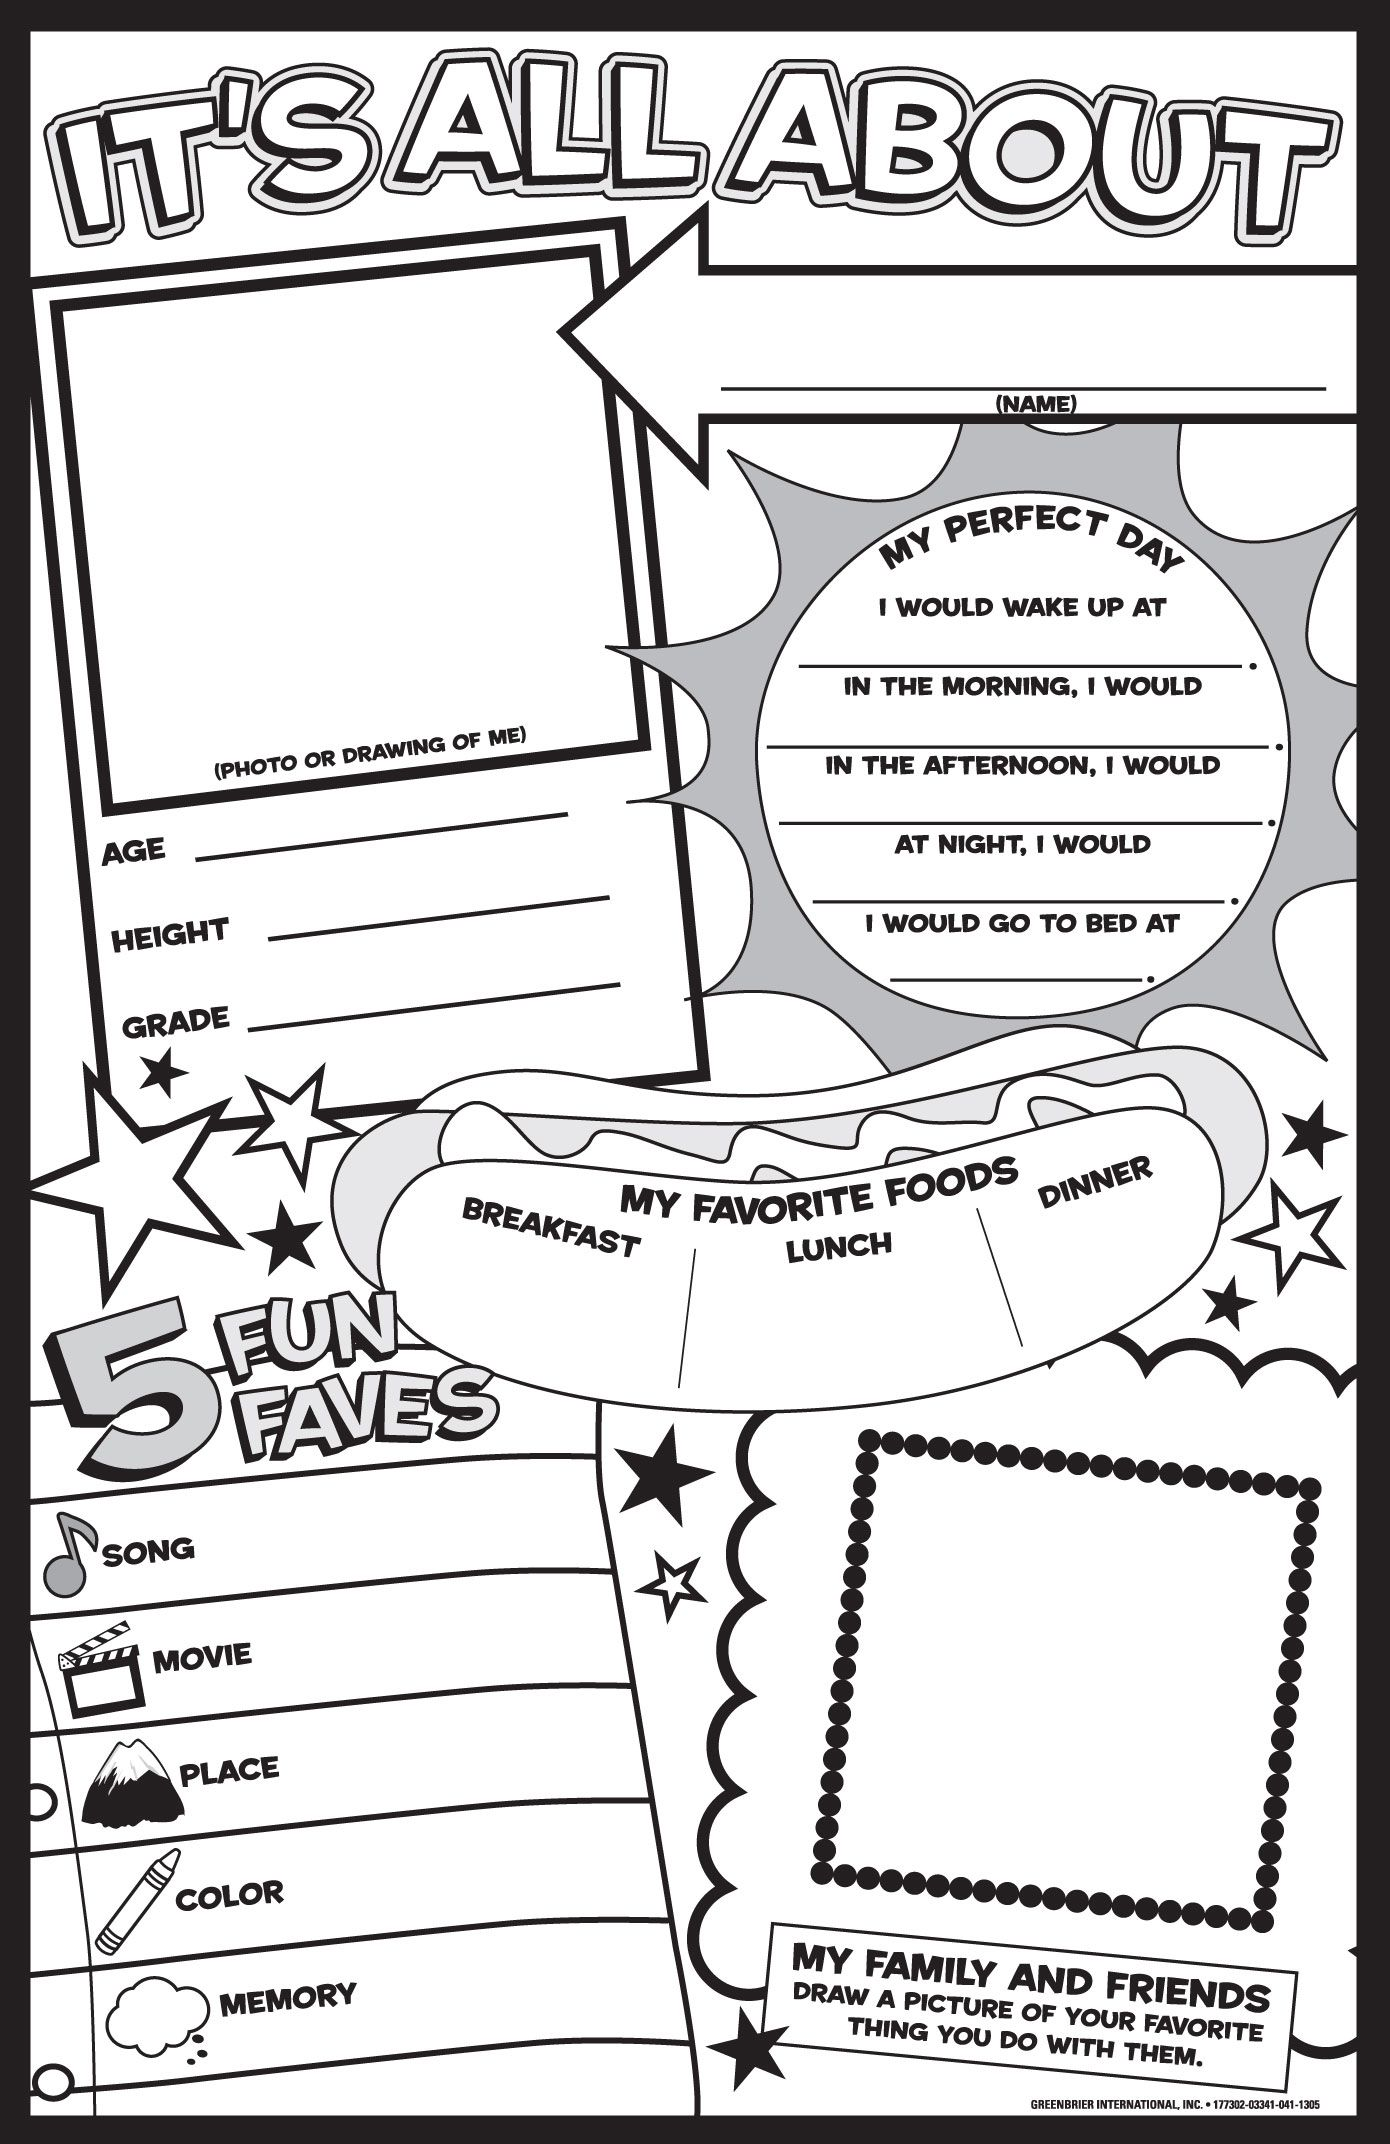 worksheet About Me Worksheet all about me worksheets printables instant personal poster sets 6 best images of free printable posters template worksheet and w